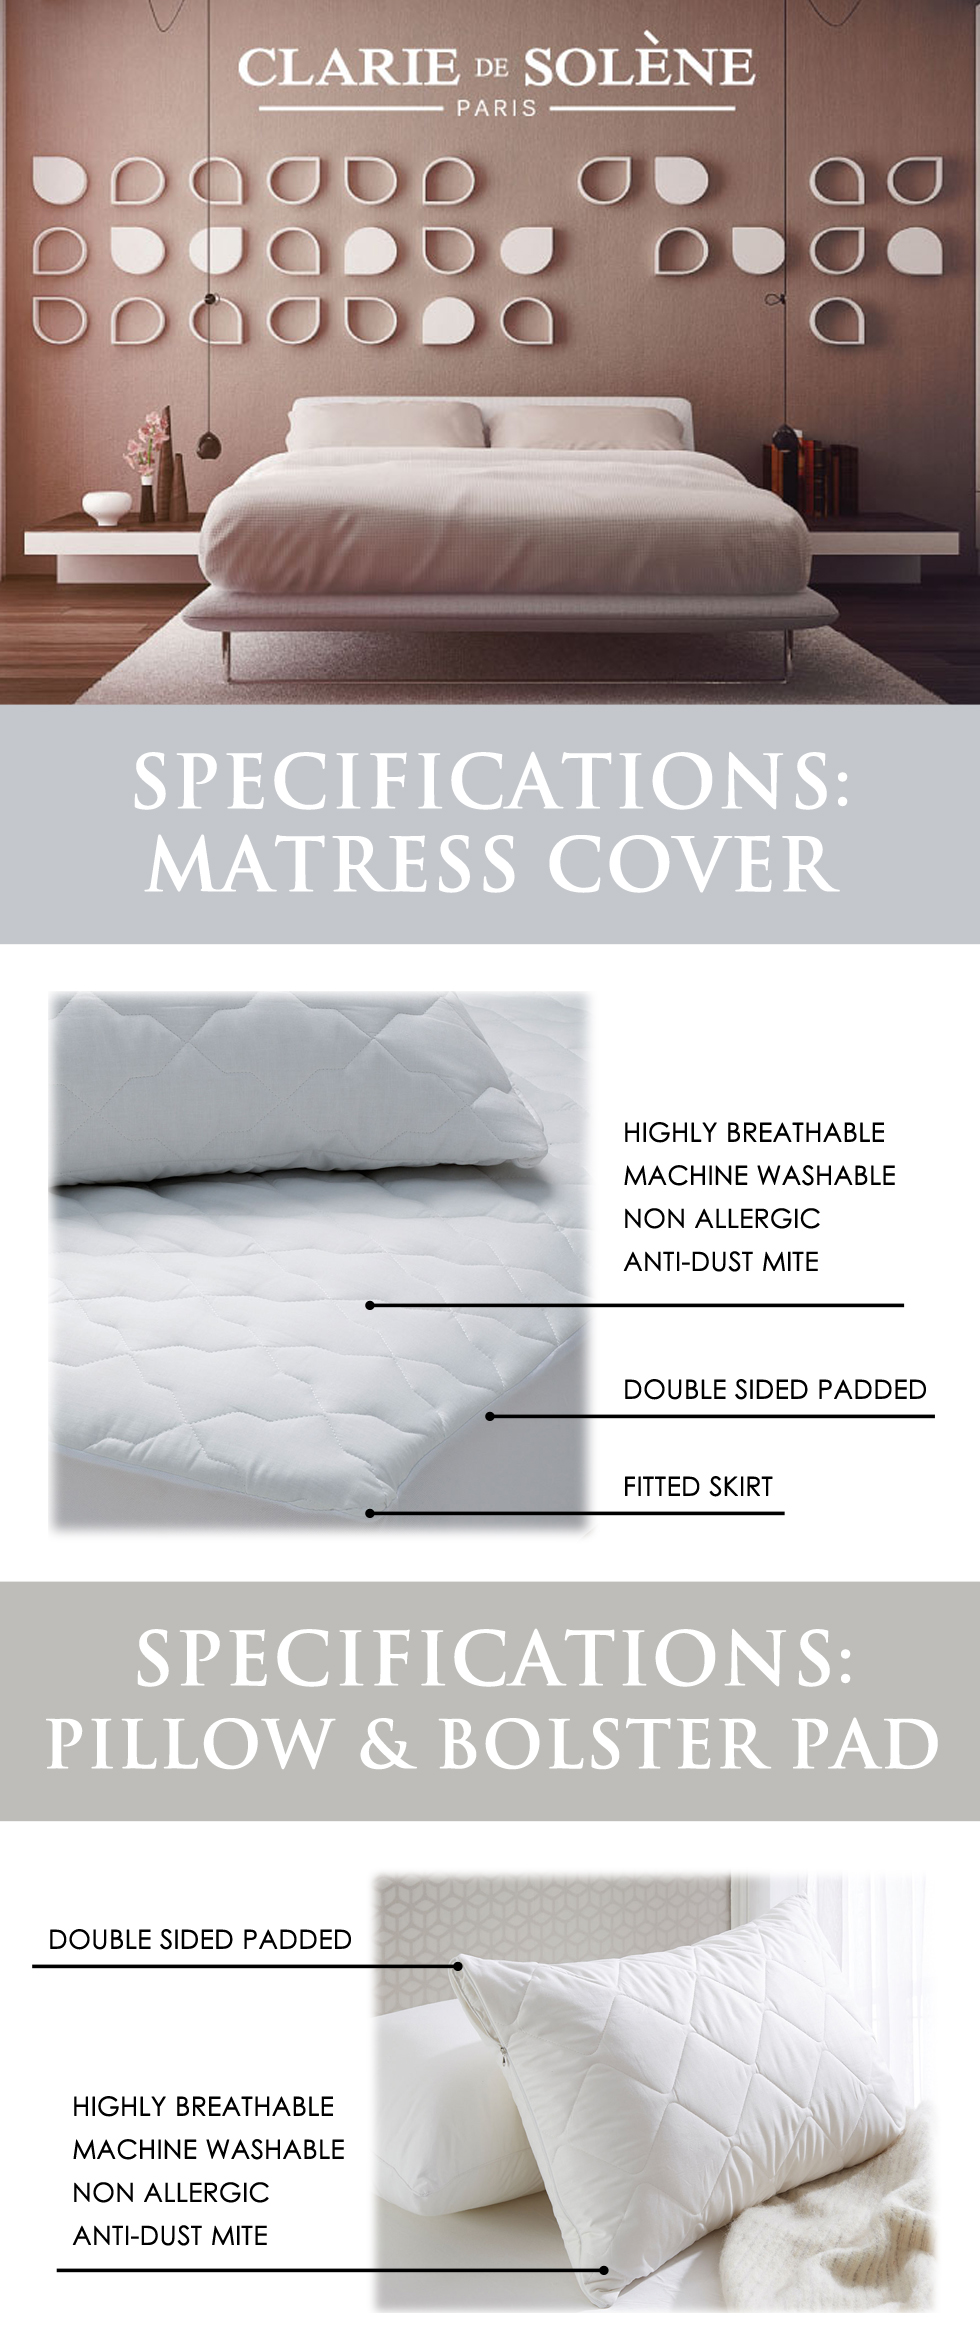 buy claire de solene fitted mattress protector add on option for